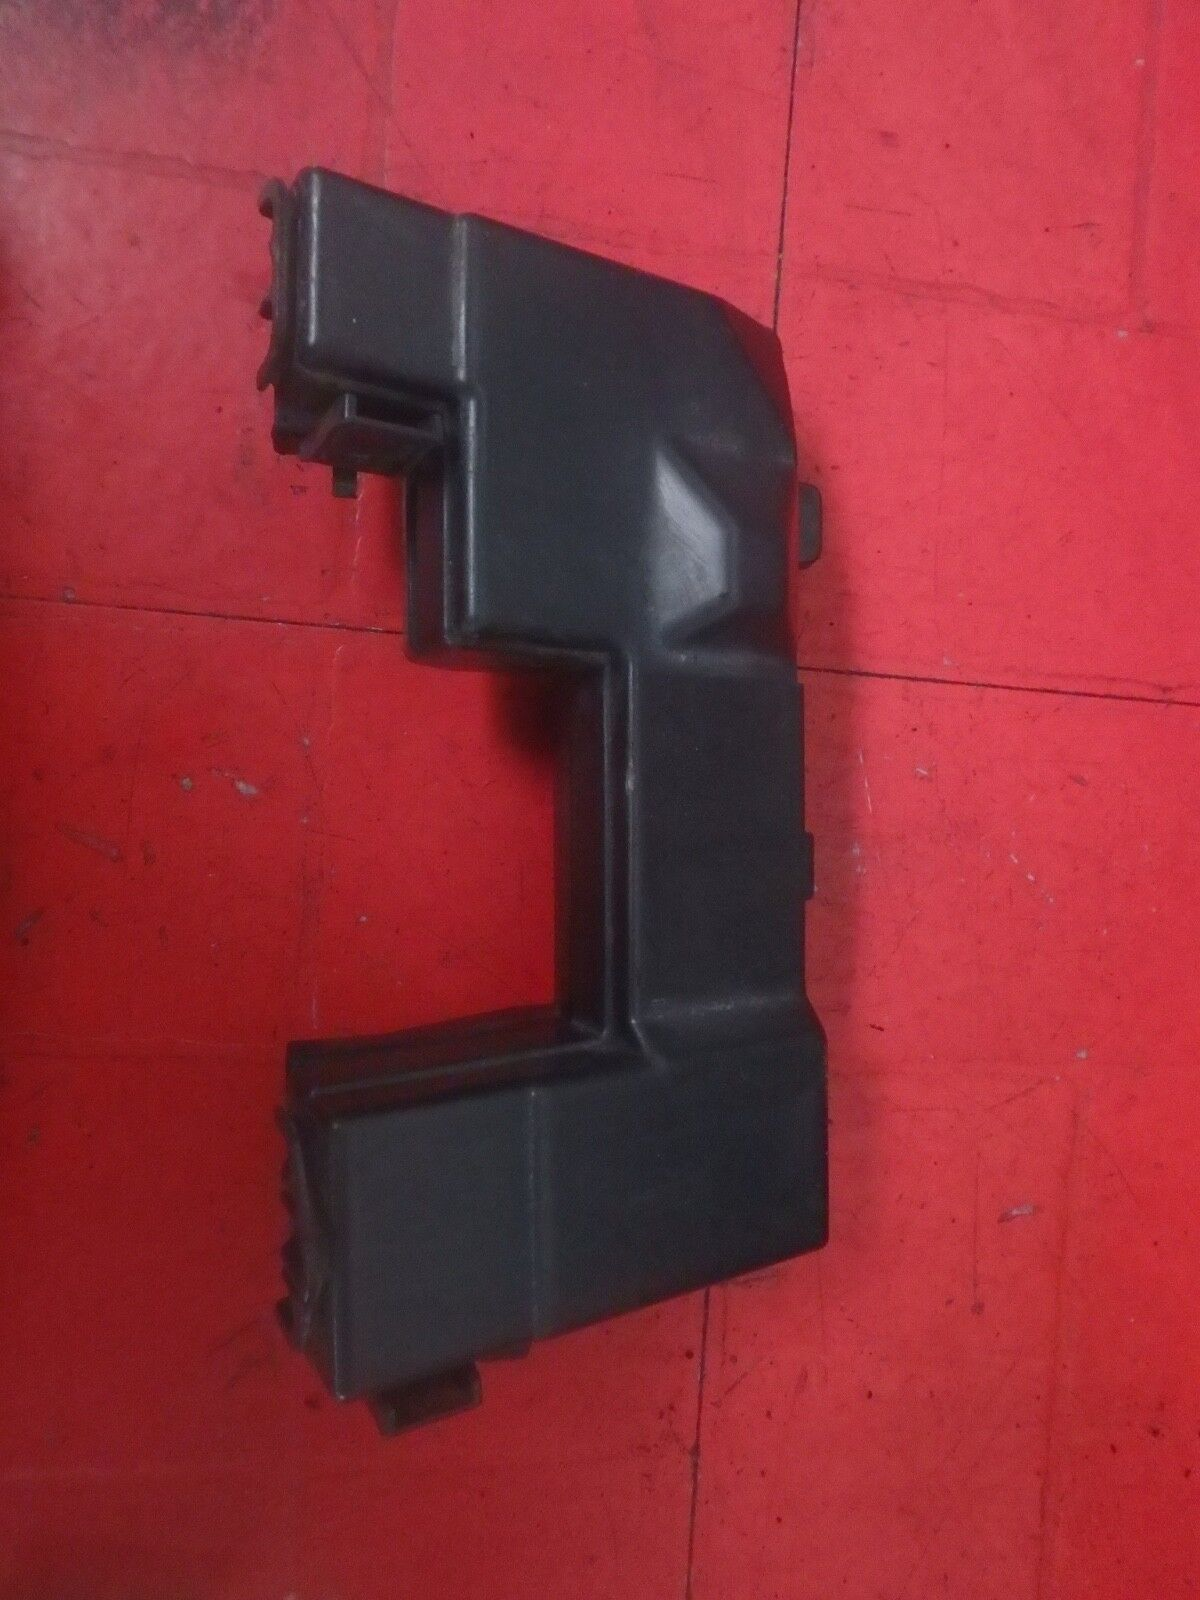 Used Honda Pedals And Pads For Sale Page 11 1988 Prelude Under Hood Fuse Box 1991 Crx Engine Bay With Cover Lid Oem